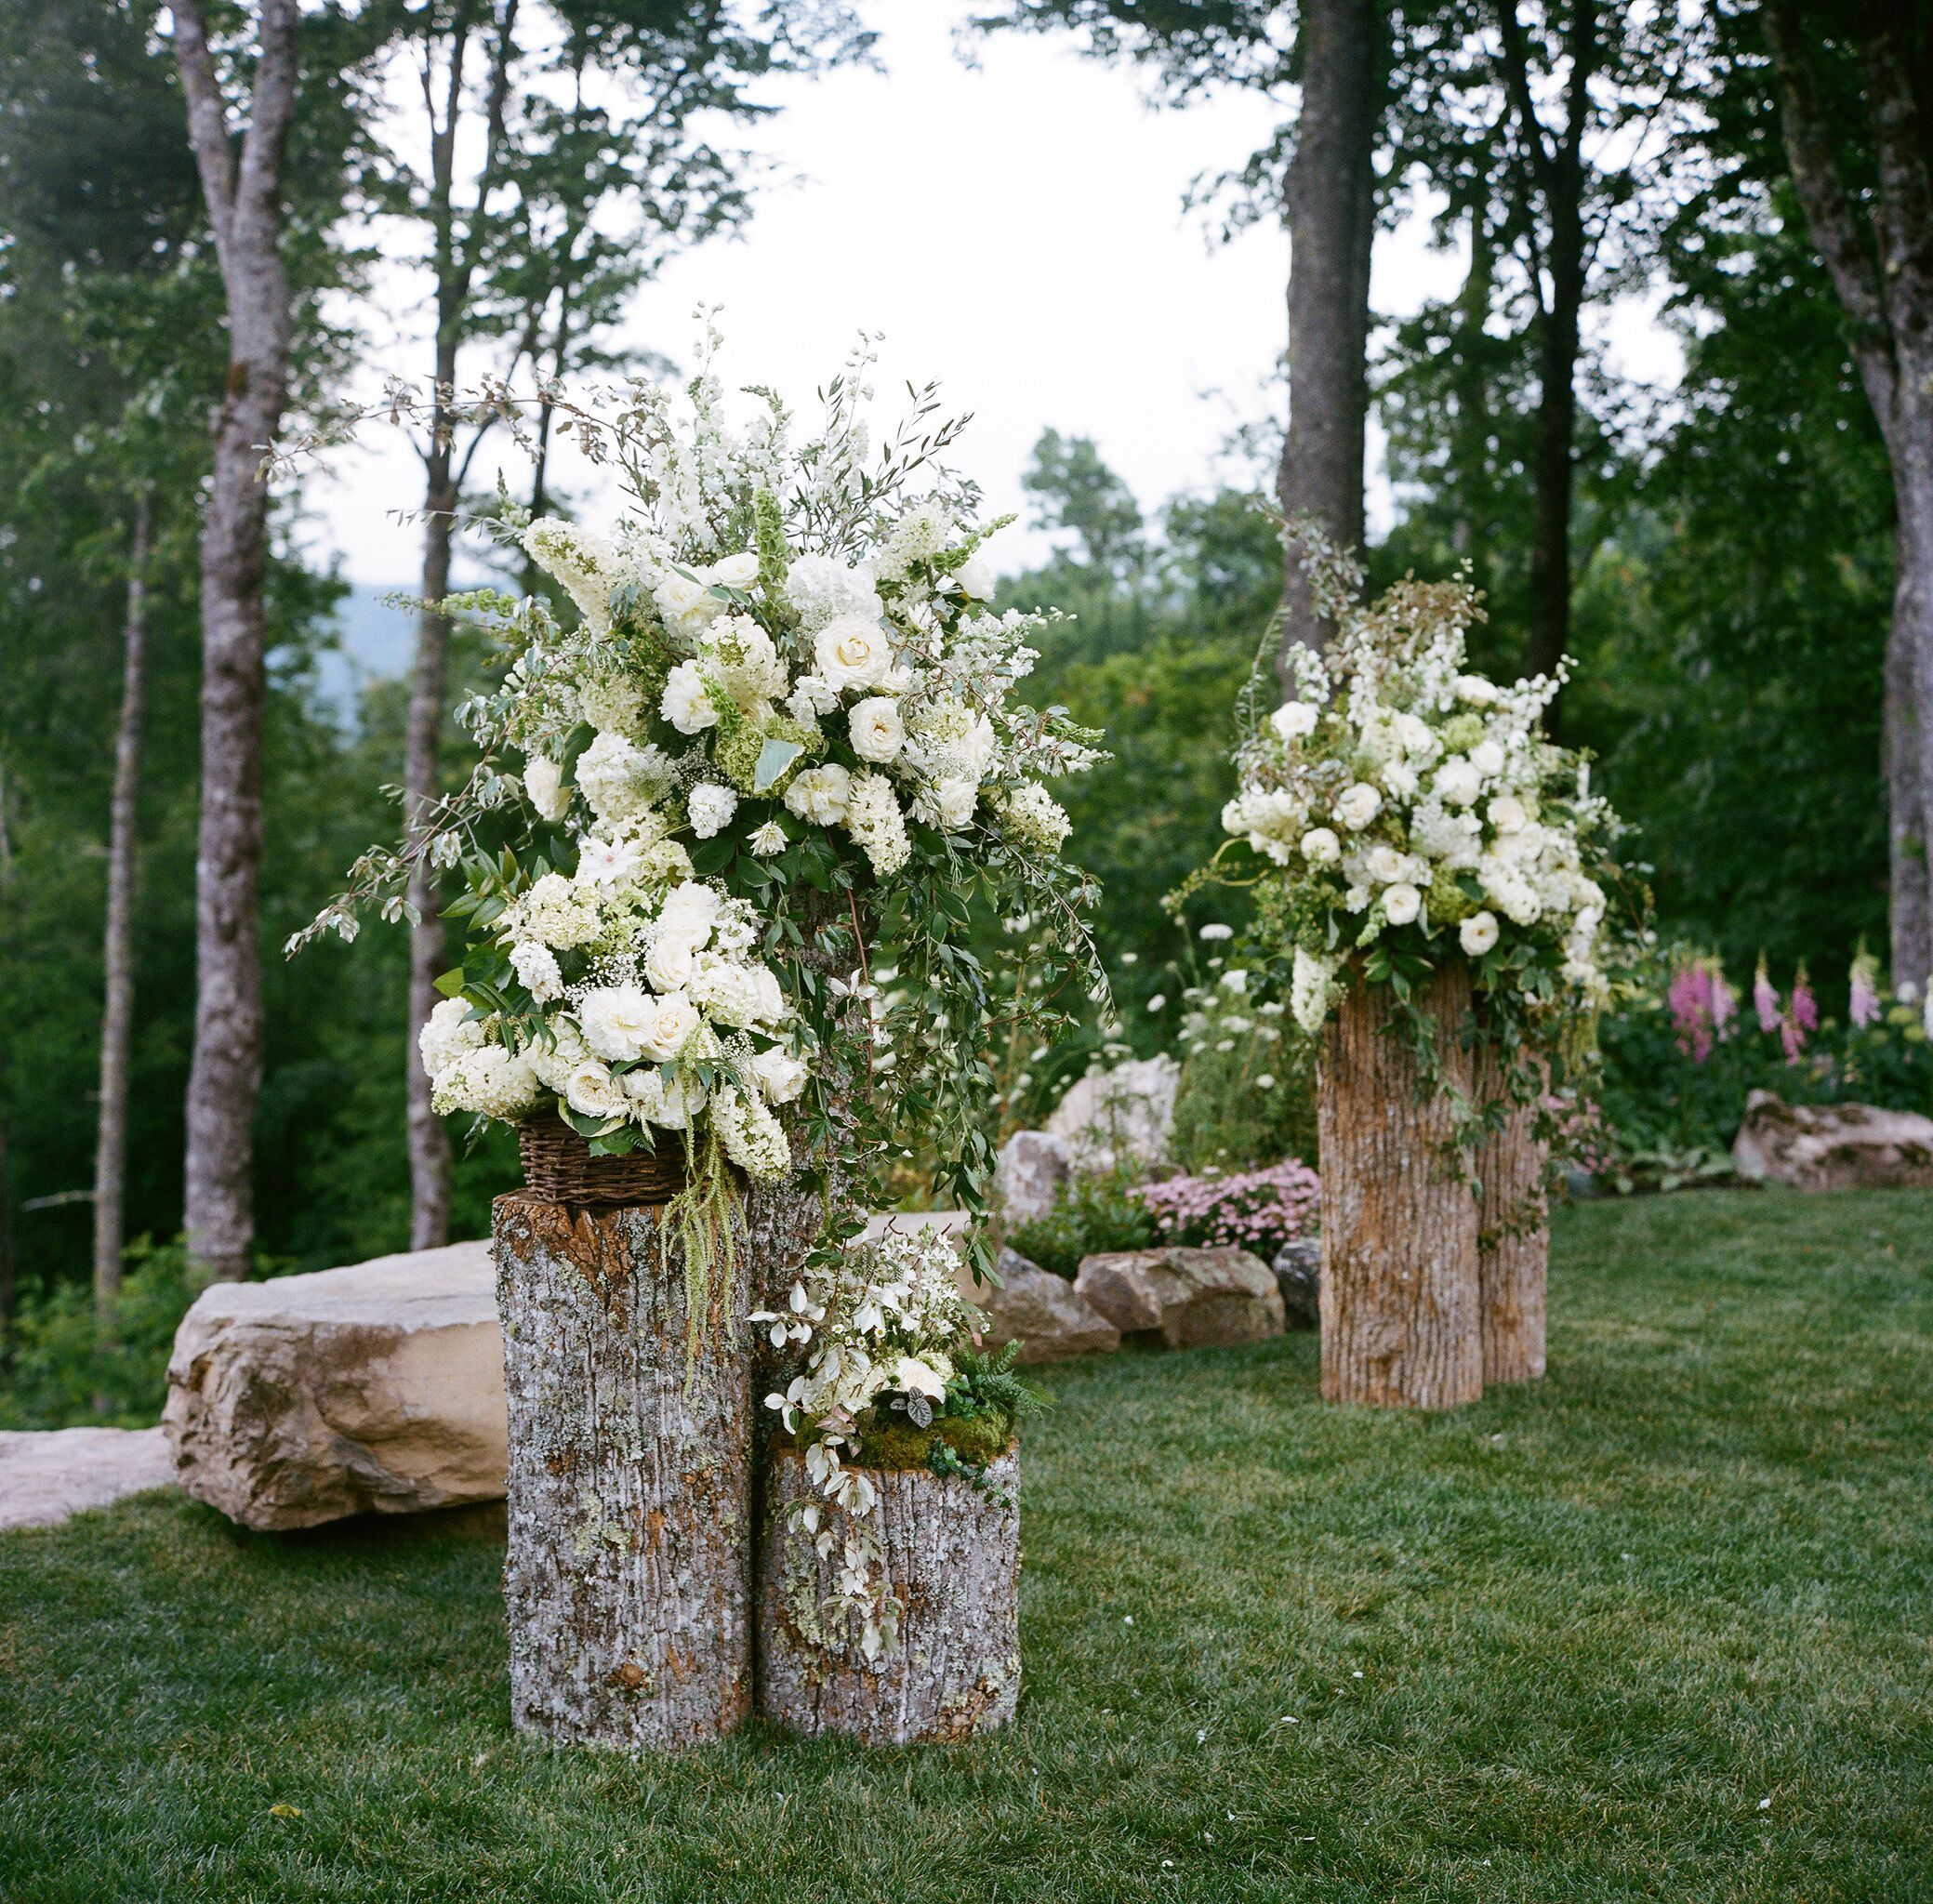 Exceptionnel Rustic Wood And Overgrown White Floral Wedding Altar Decor